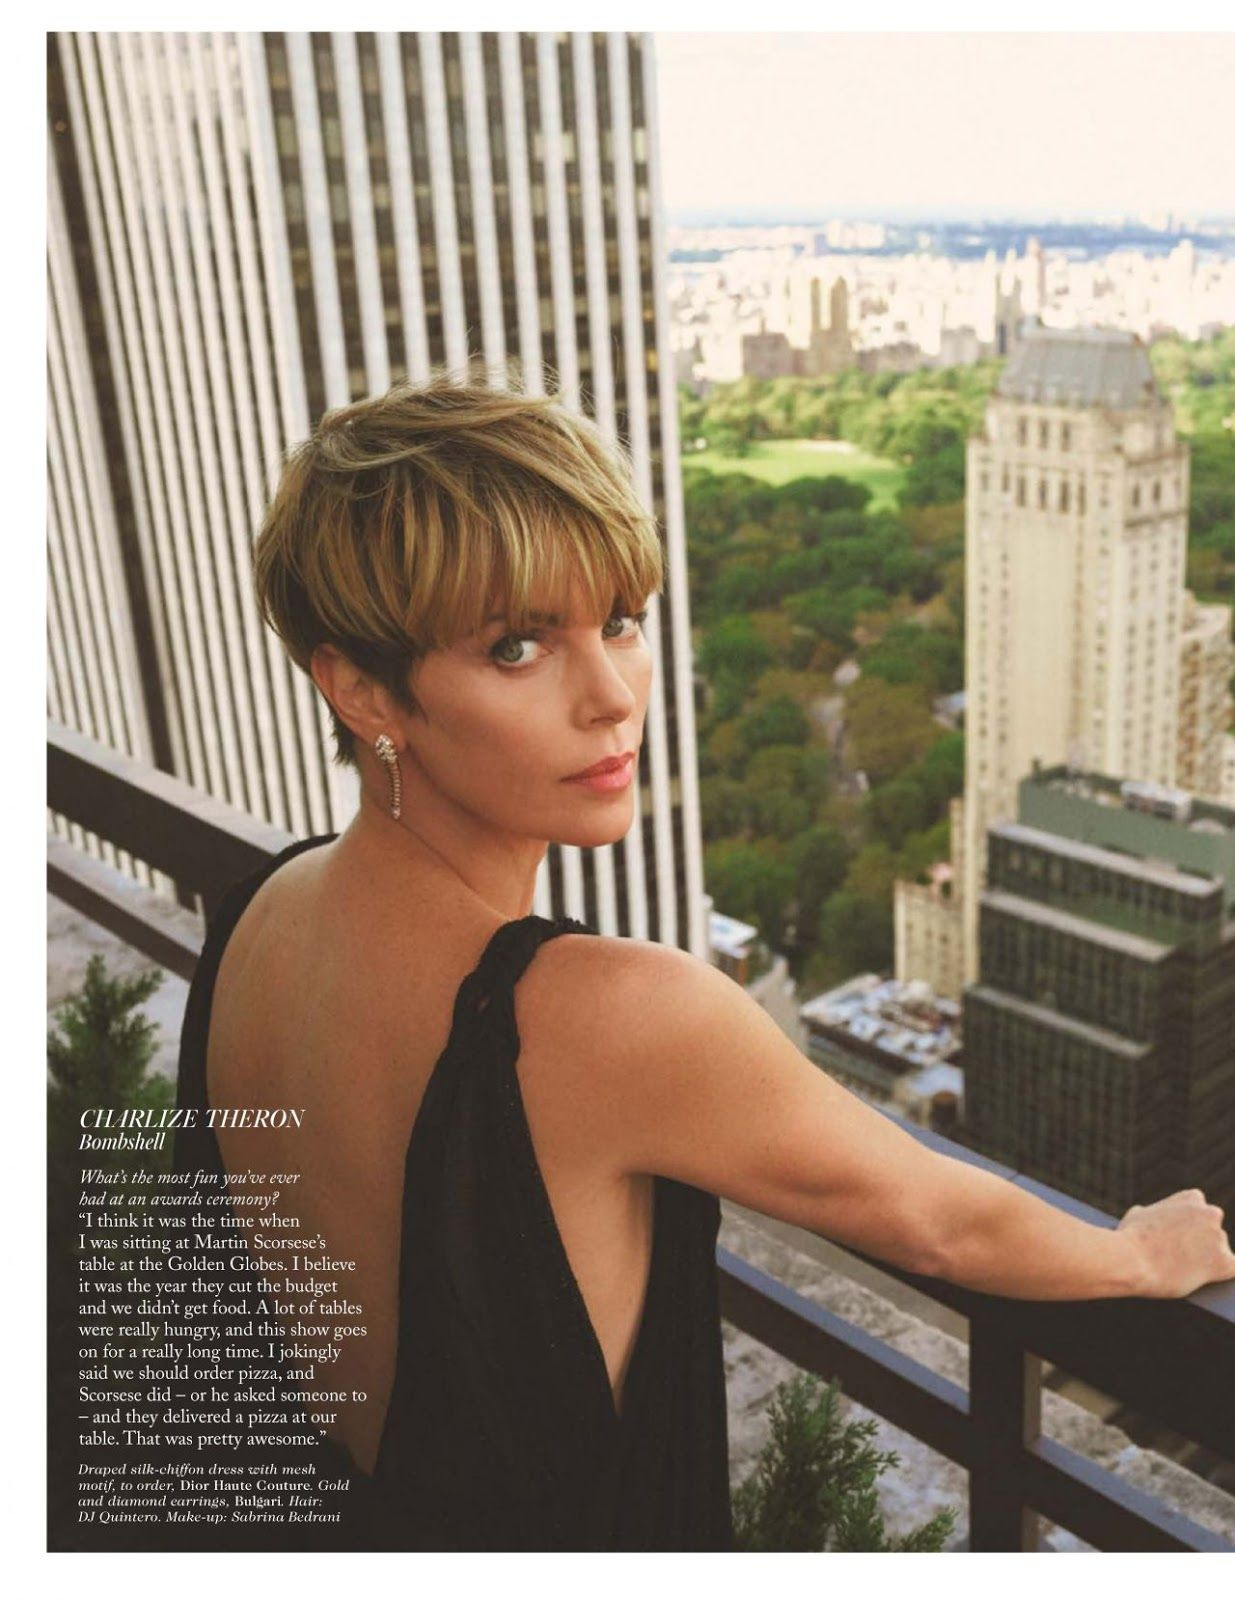 Celebmove Charlize Theron Vogue Uk February 2020 In 2020 Charlize Theron Short Hair Short Hair Styles Charlize Theron Hair